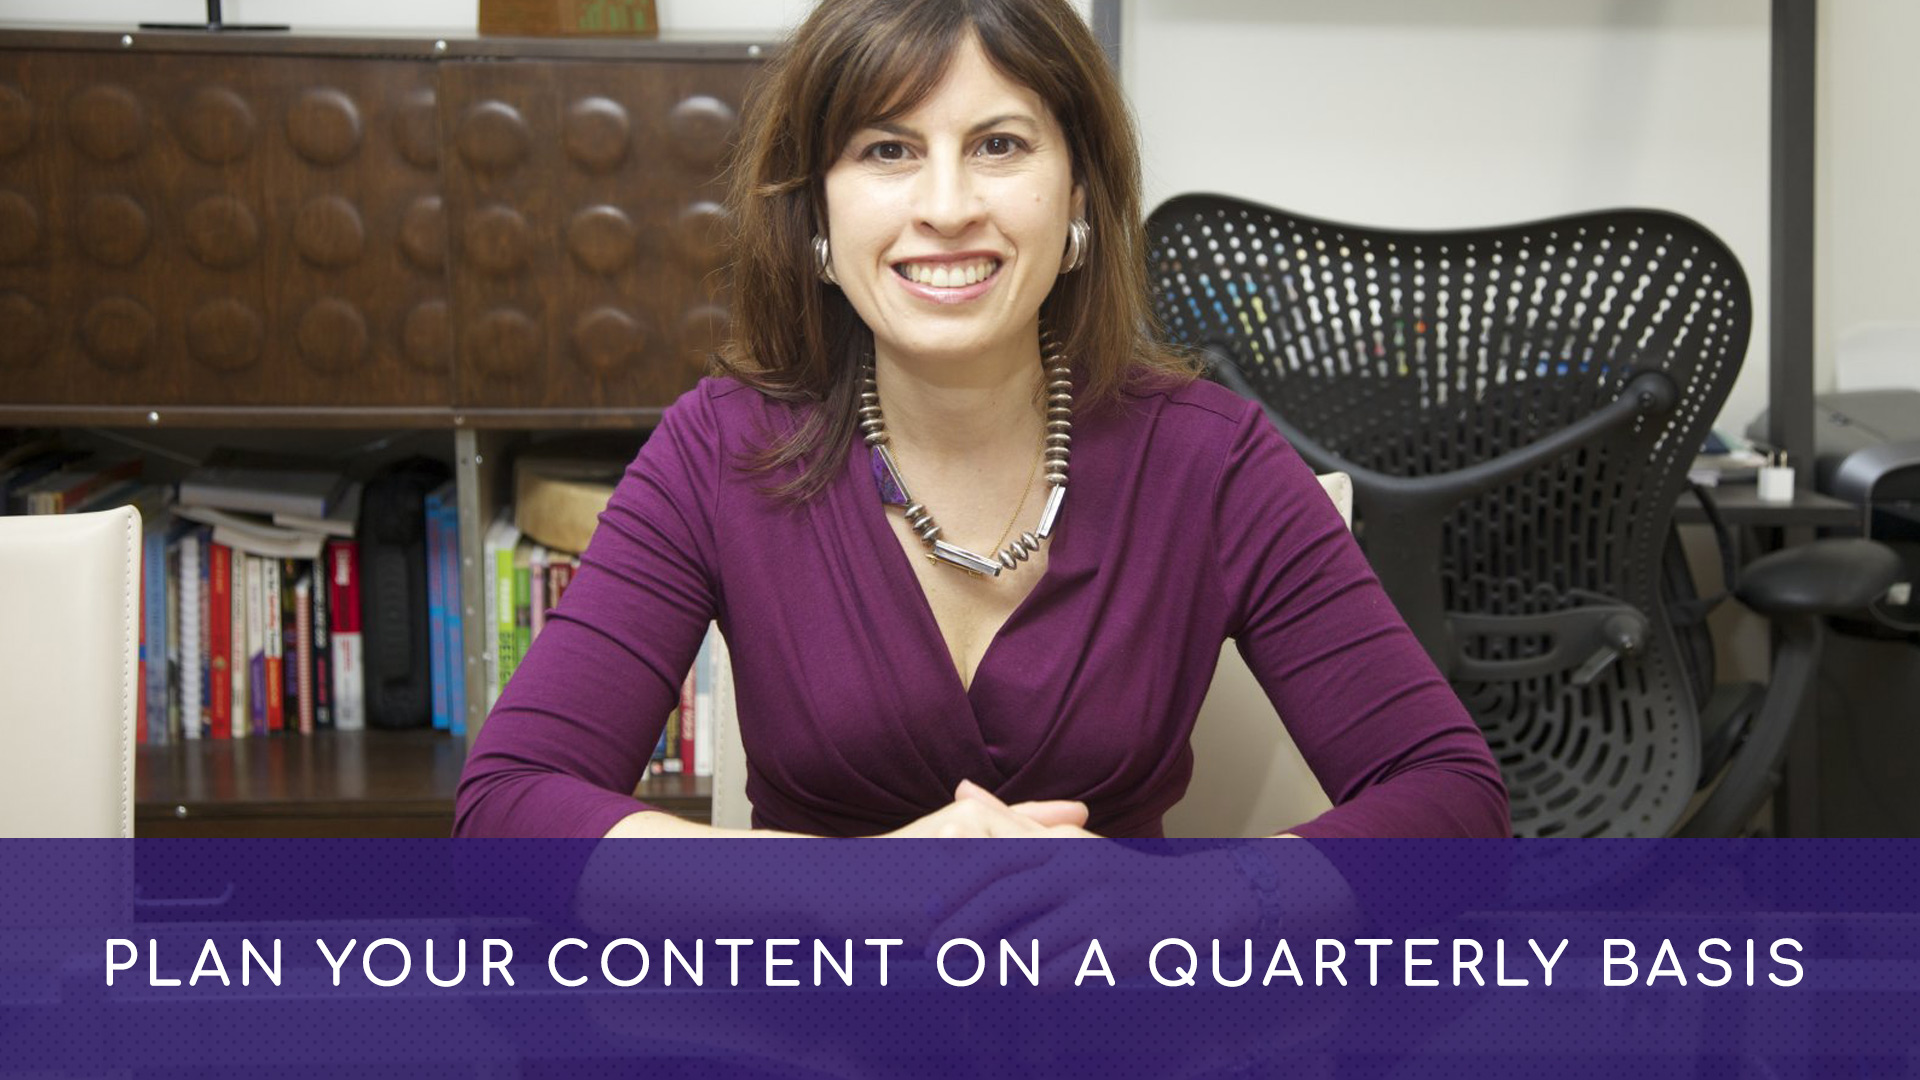 Plan Your Content On A Quarterly Basis